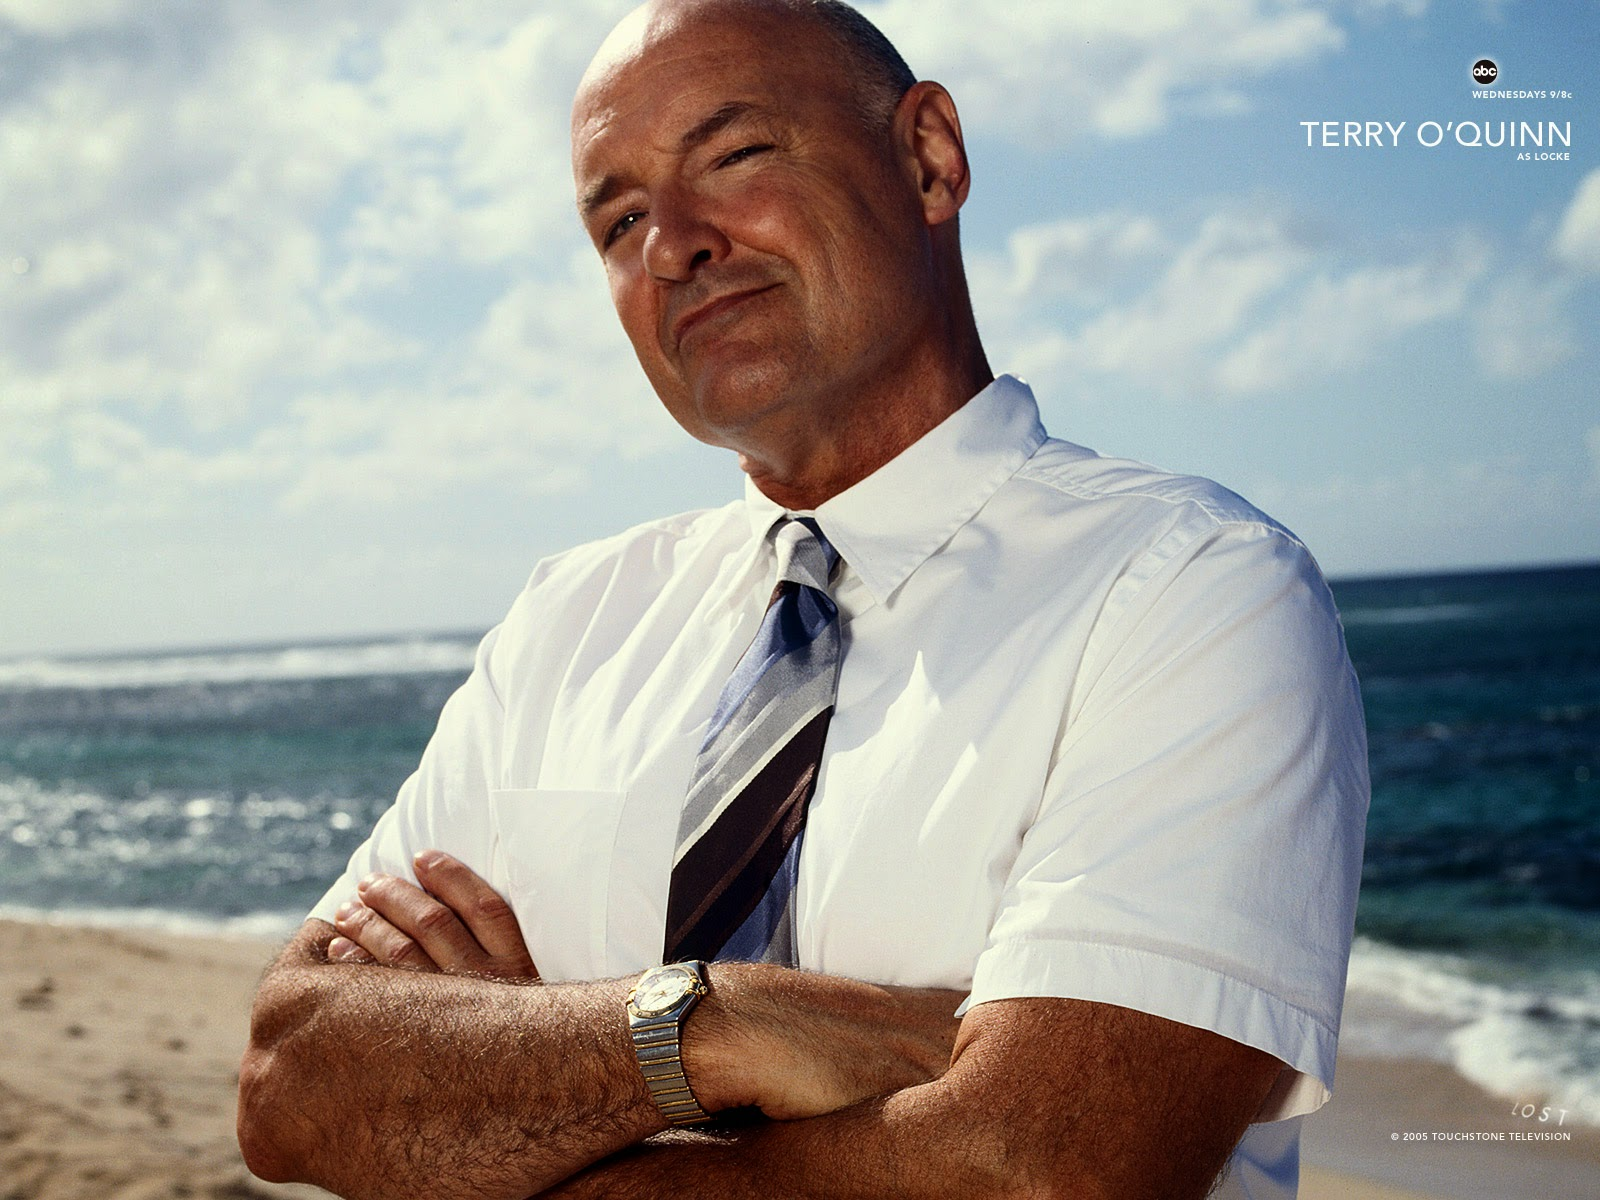 lost Television serial Terry O'quinn Wallpaper